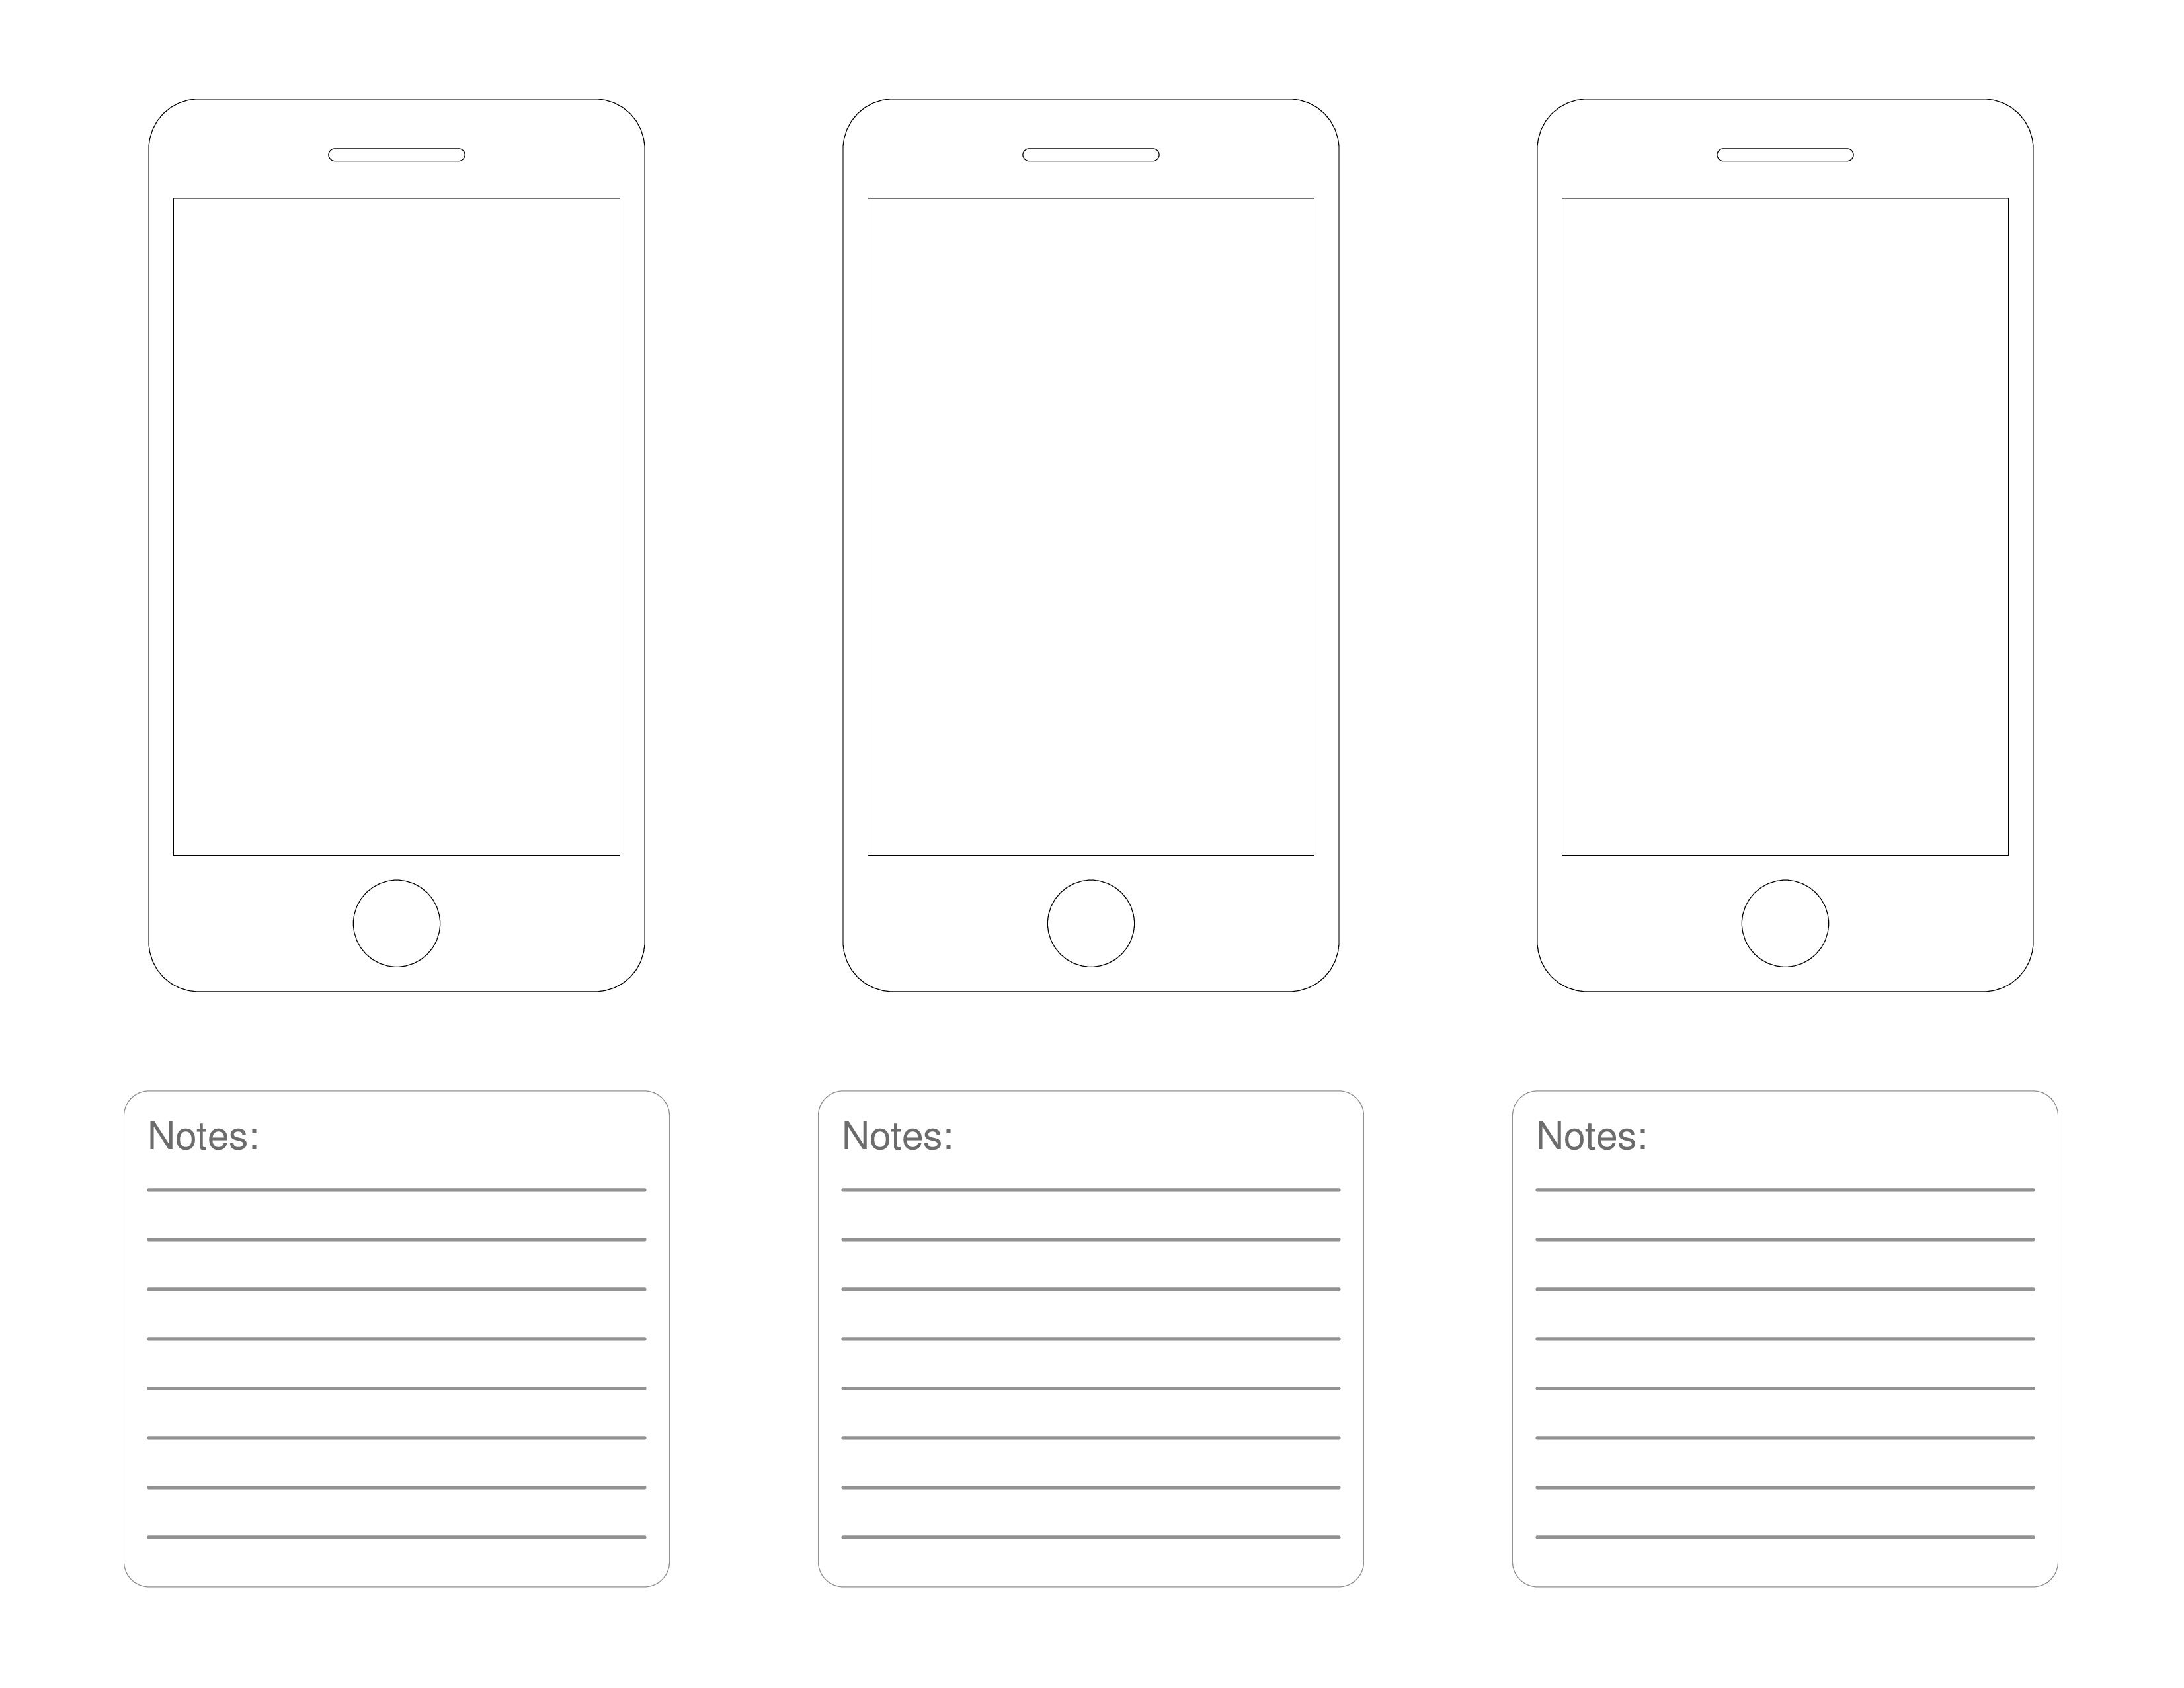 000 Dreaded Iphone App Design Template Highest Clarity  Templates Io Sketch Psd Free DownloadFull